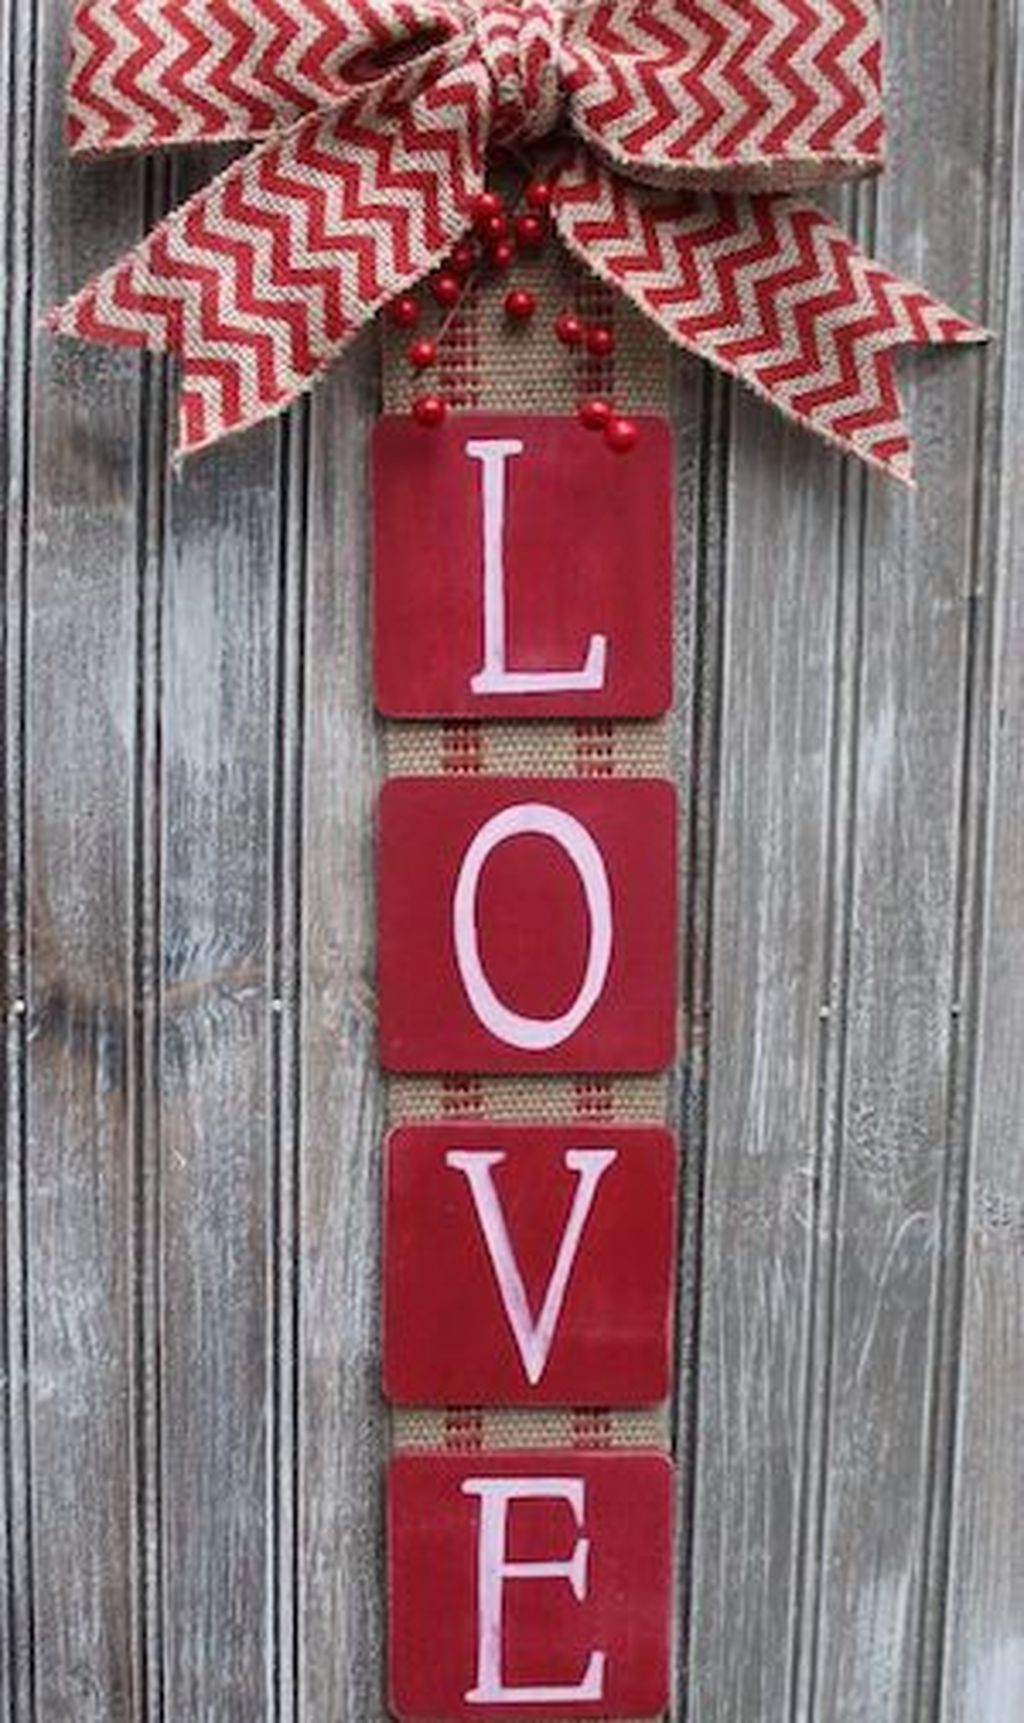 Inspiring Valentine Door Decorations The Historical Backdrop Of St Valentine In 2020 Diy Valentine S Day Decorations Diy Valentines Decorations Valentine Wreath Diy